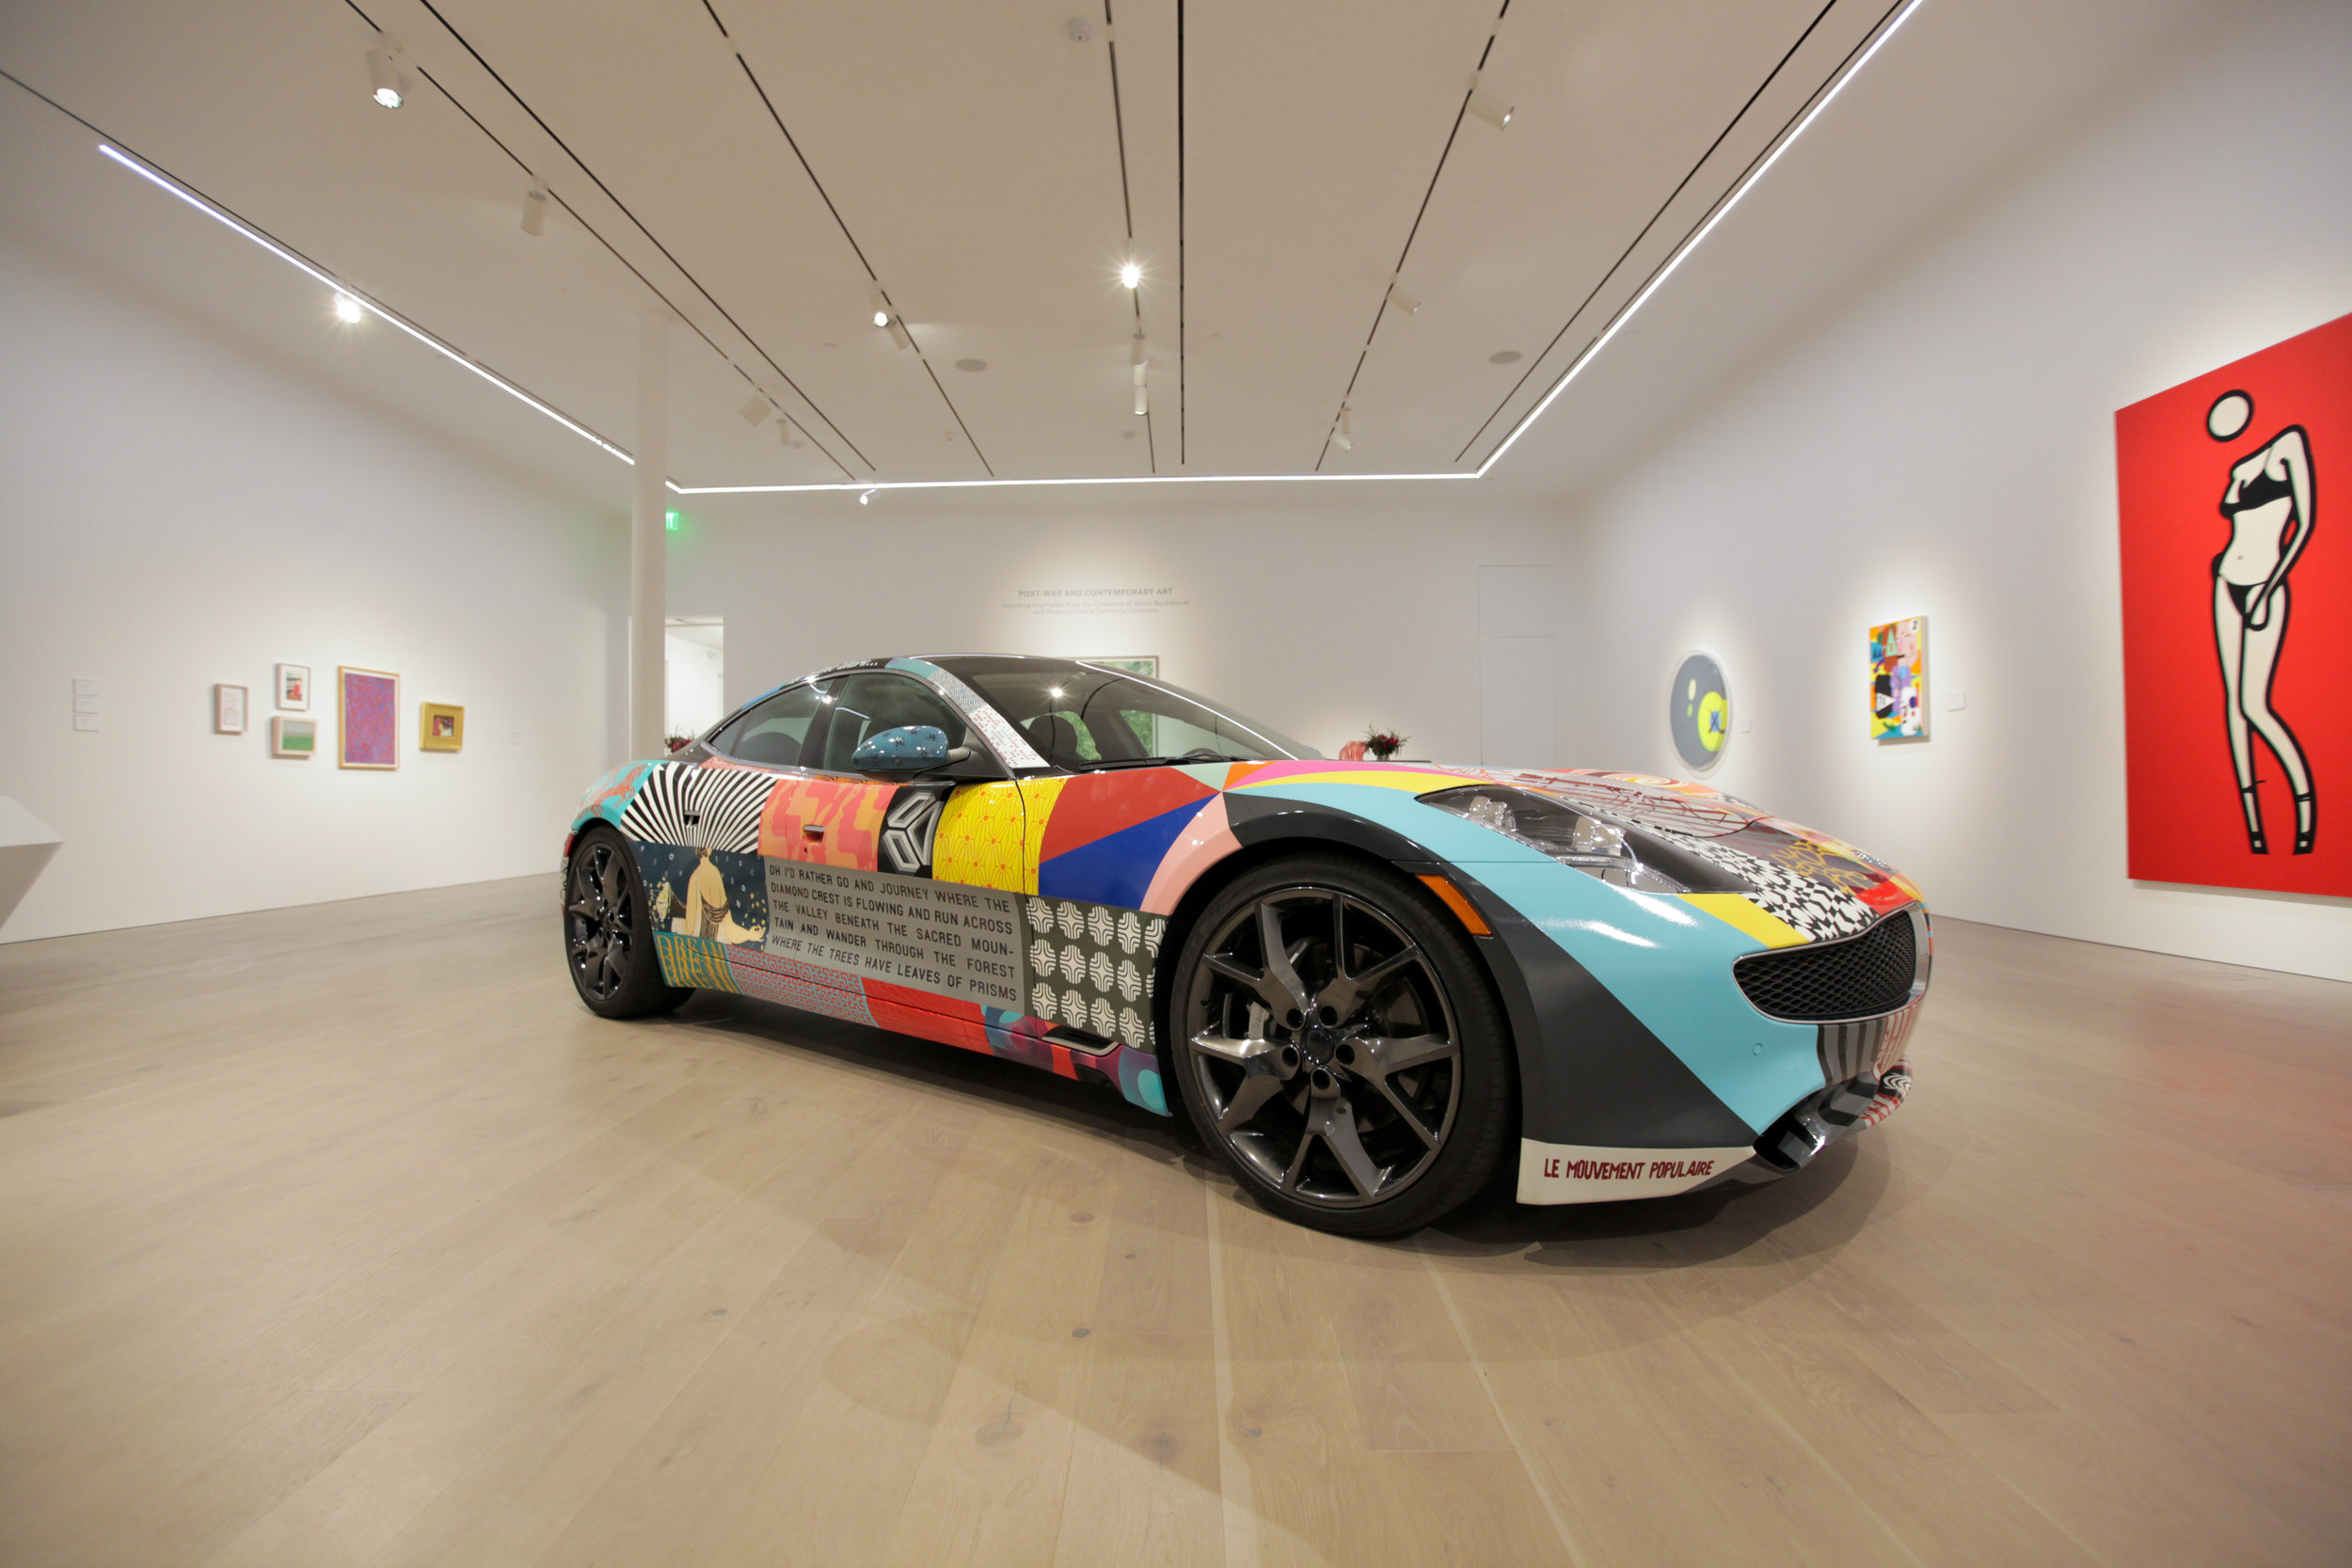 james verbicky art car karma revero 2018j.jpg